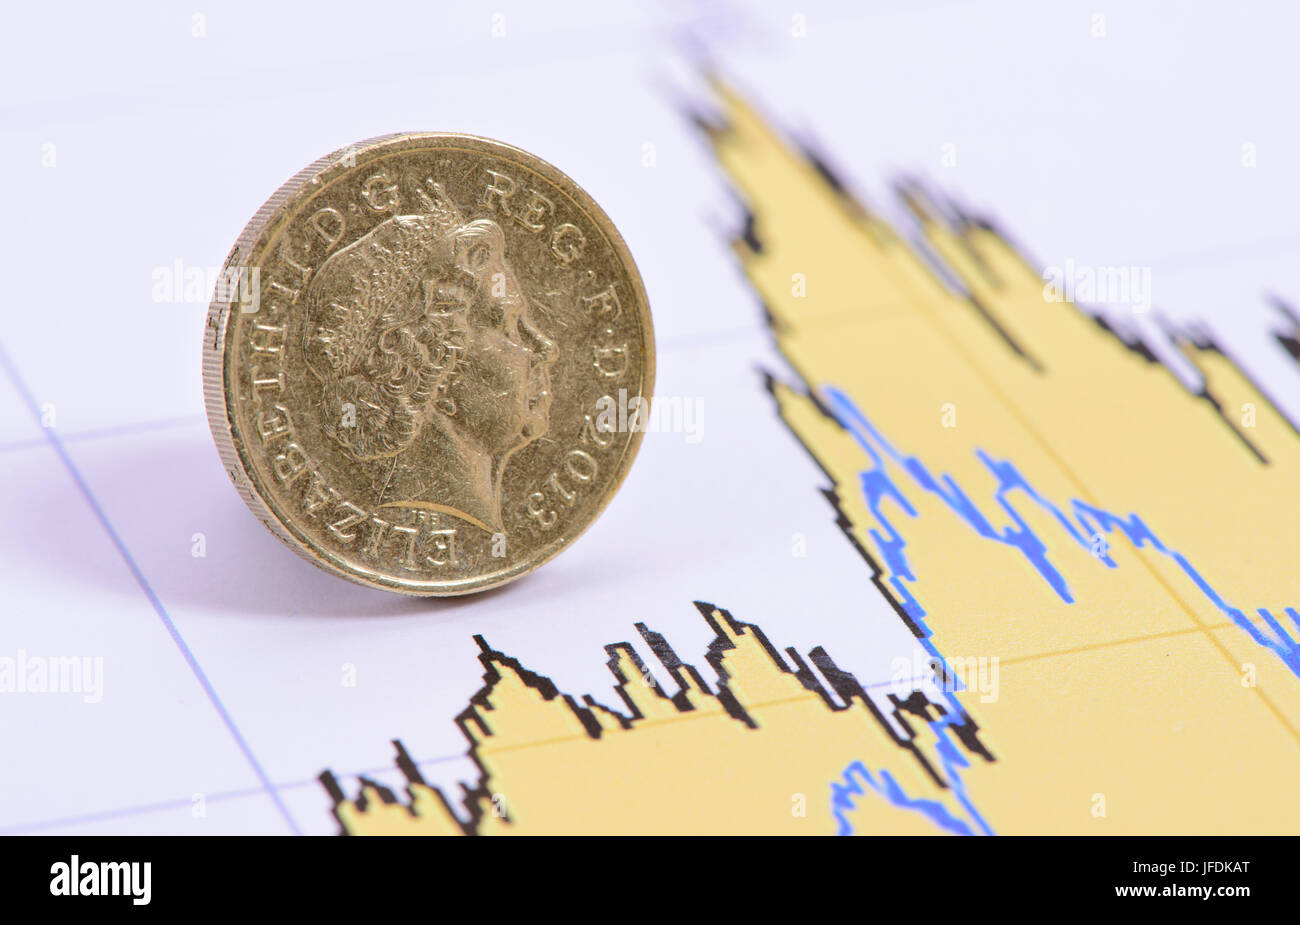 chart of exchange and financial market with coin of brittish currency Stock Photo